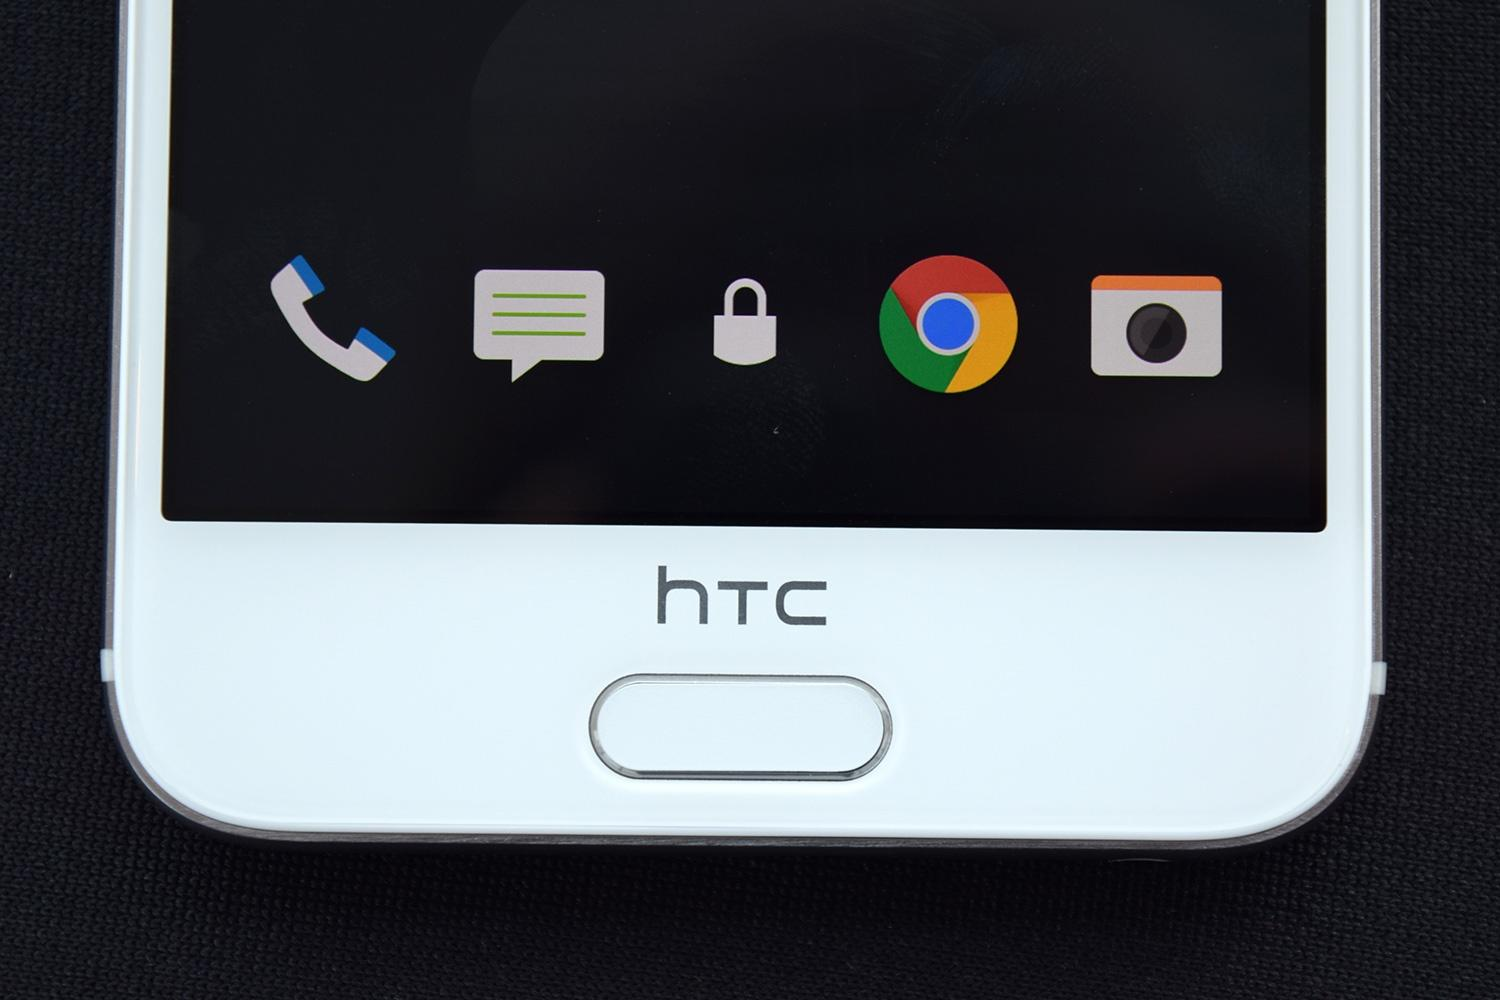 HTC's first smartwatch could arrive in February with a sleek design